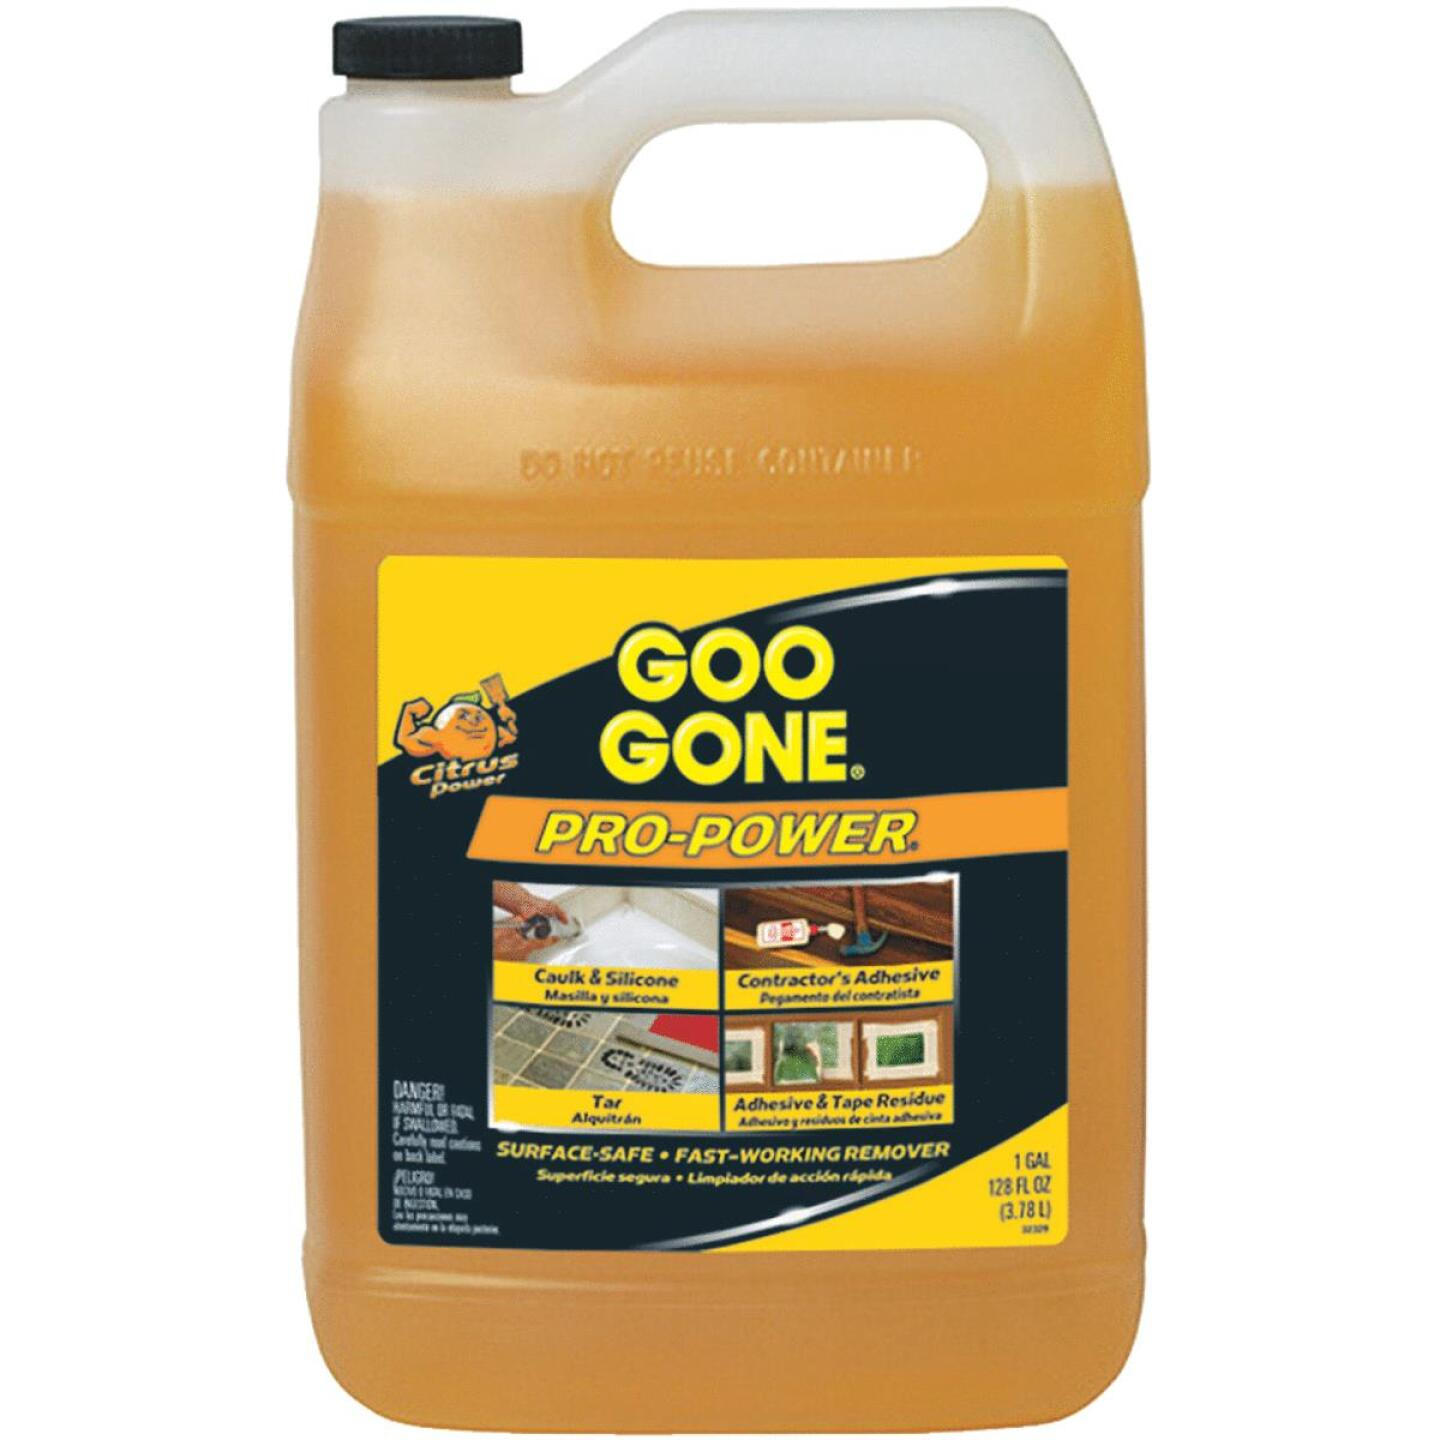 Goo Gone 1 Gal. Pro-Power Adhesive Remover Image 117